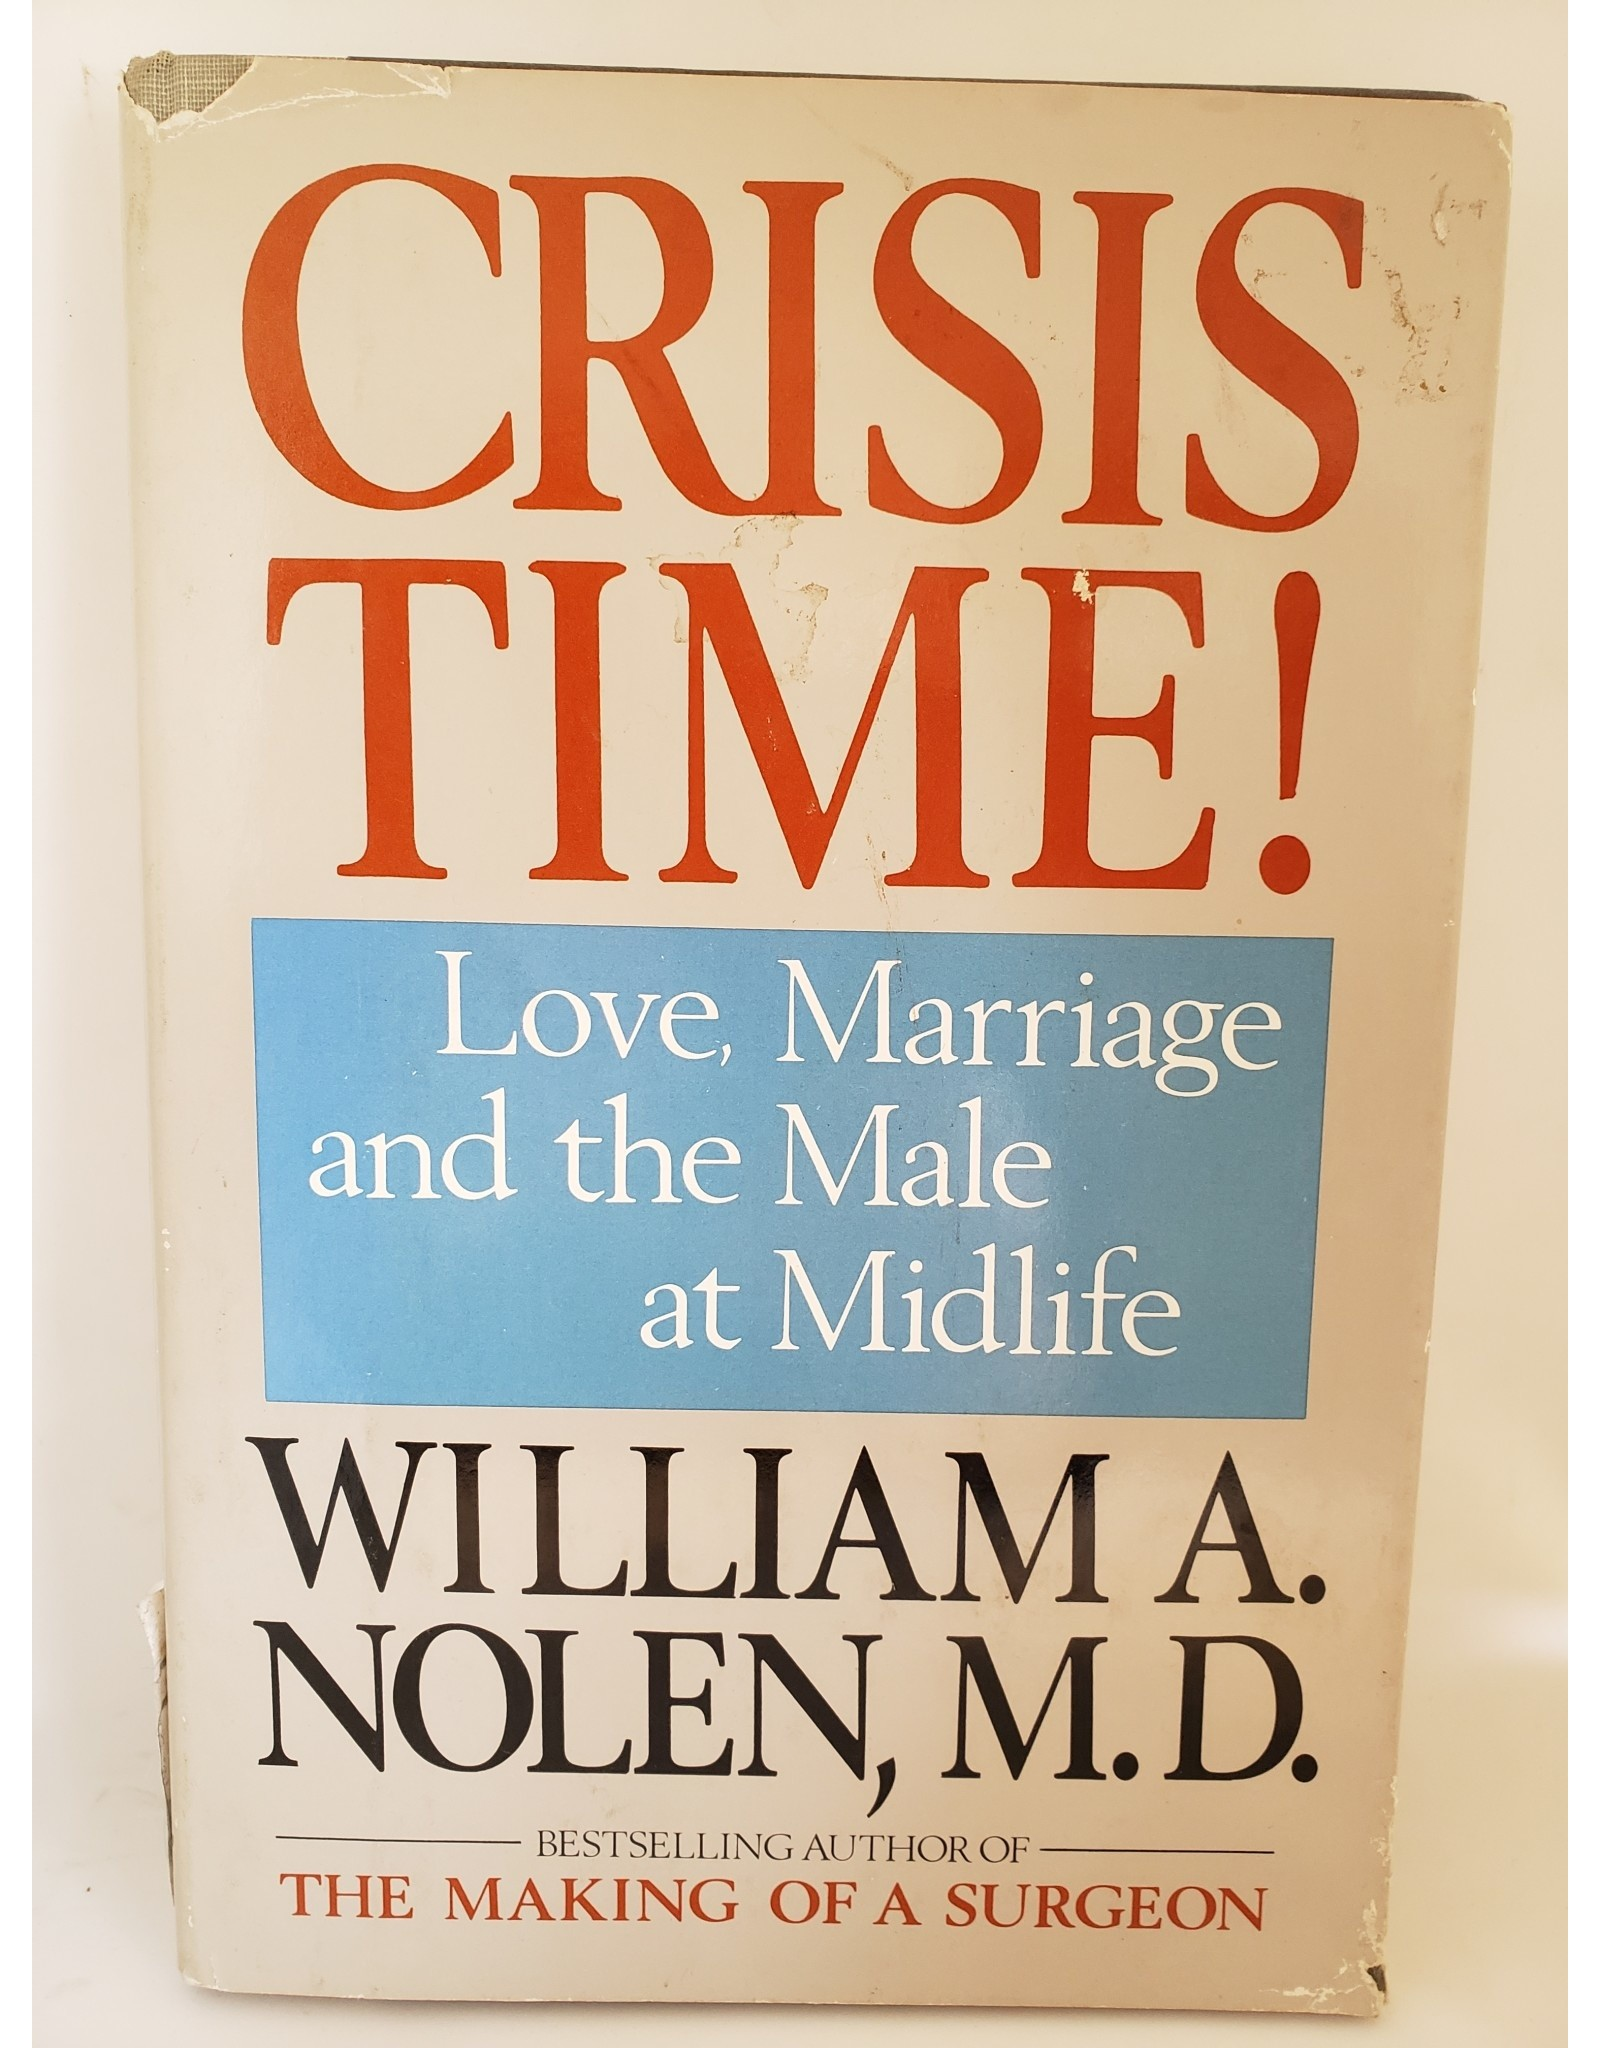 Crisis Time! Love Marriage And The Male At Midlife